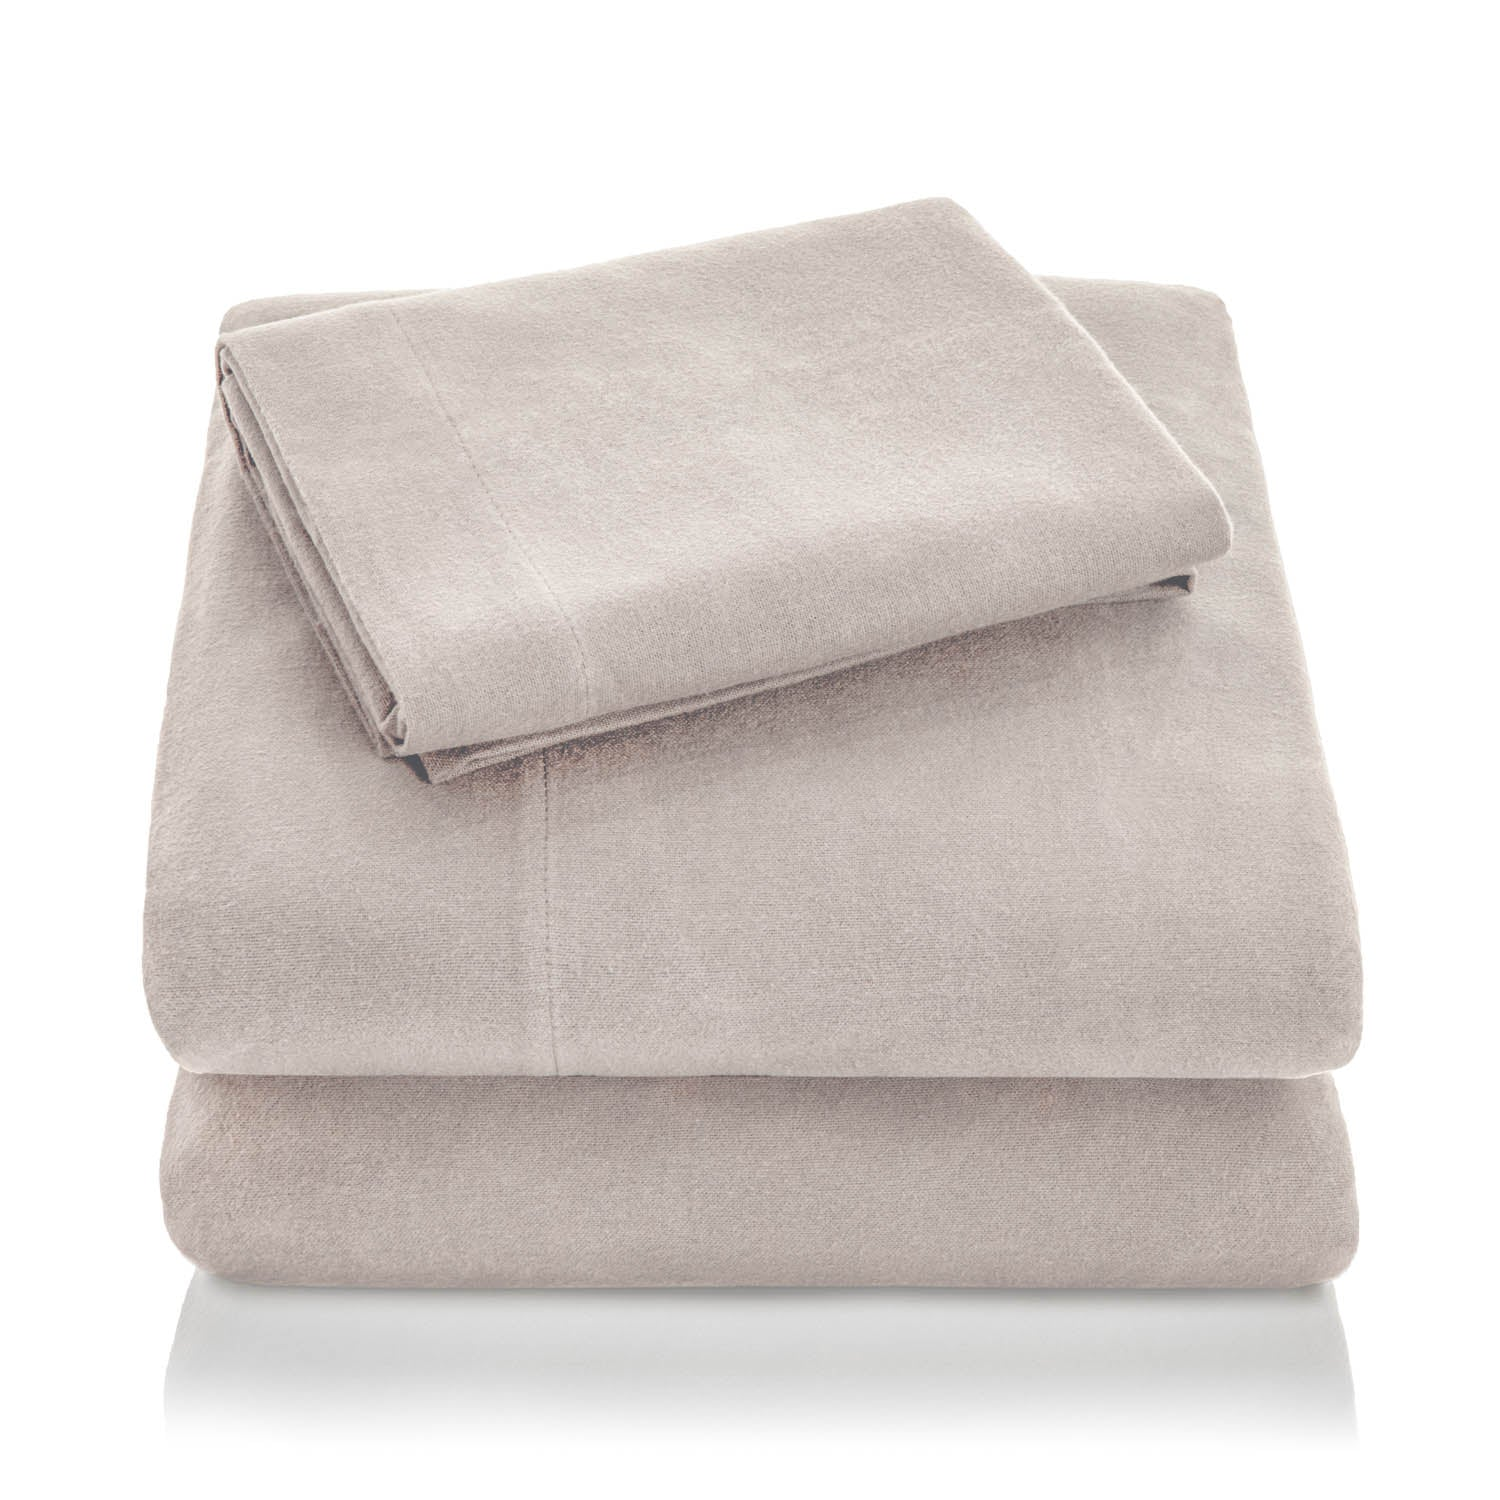 Malouf Woven Portuguese Flannel Pillowcase